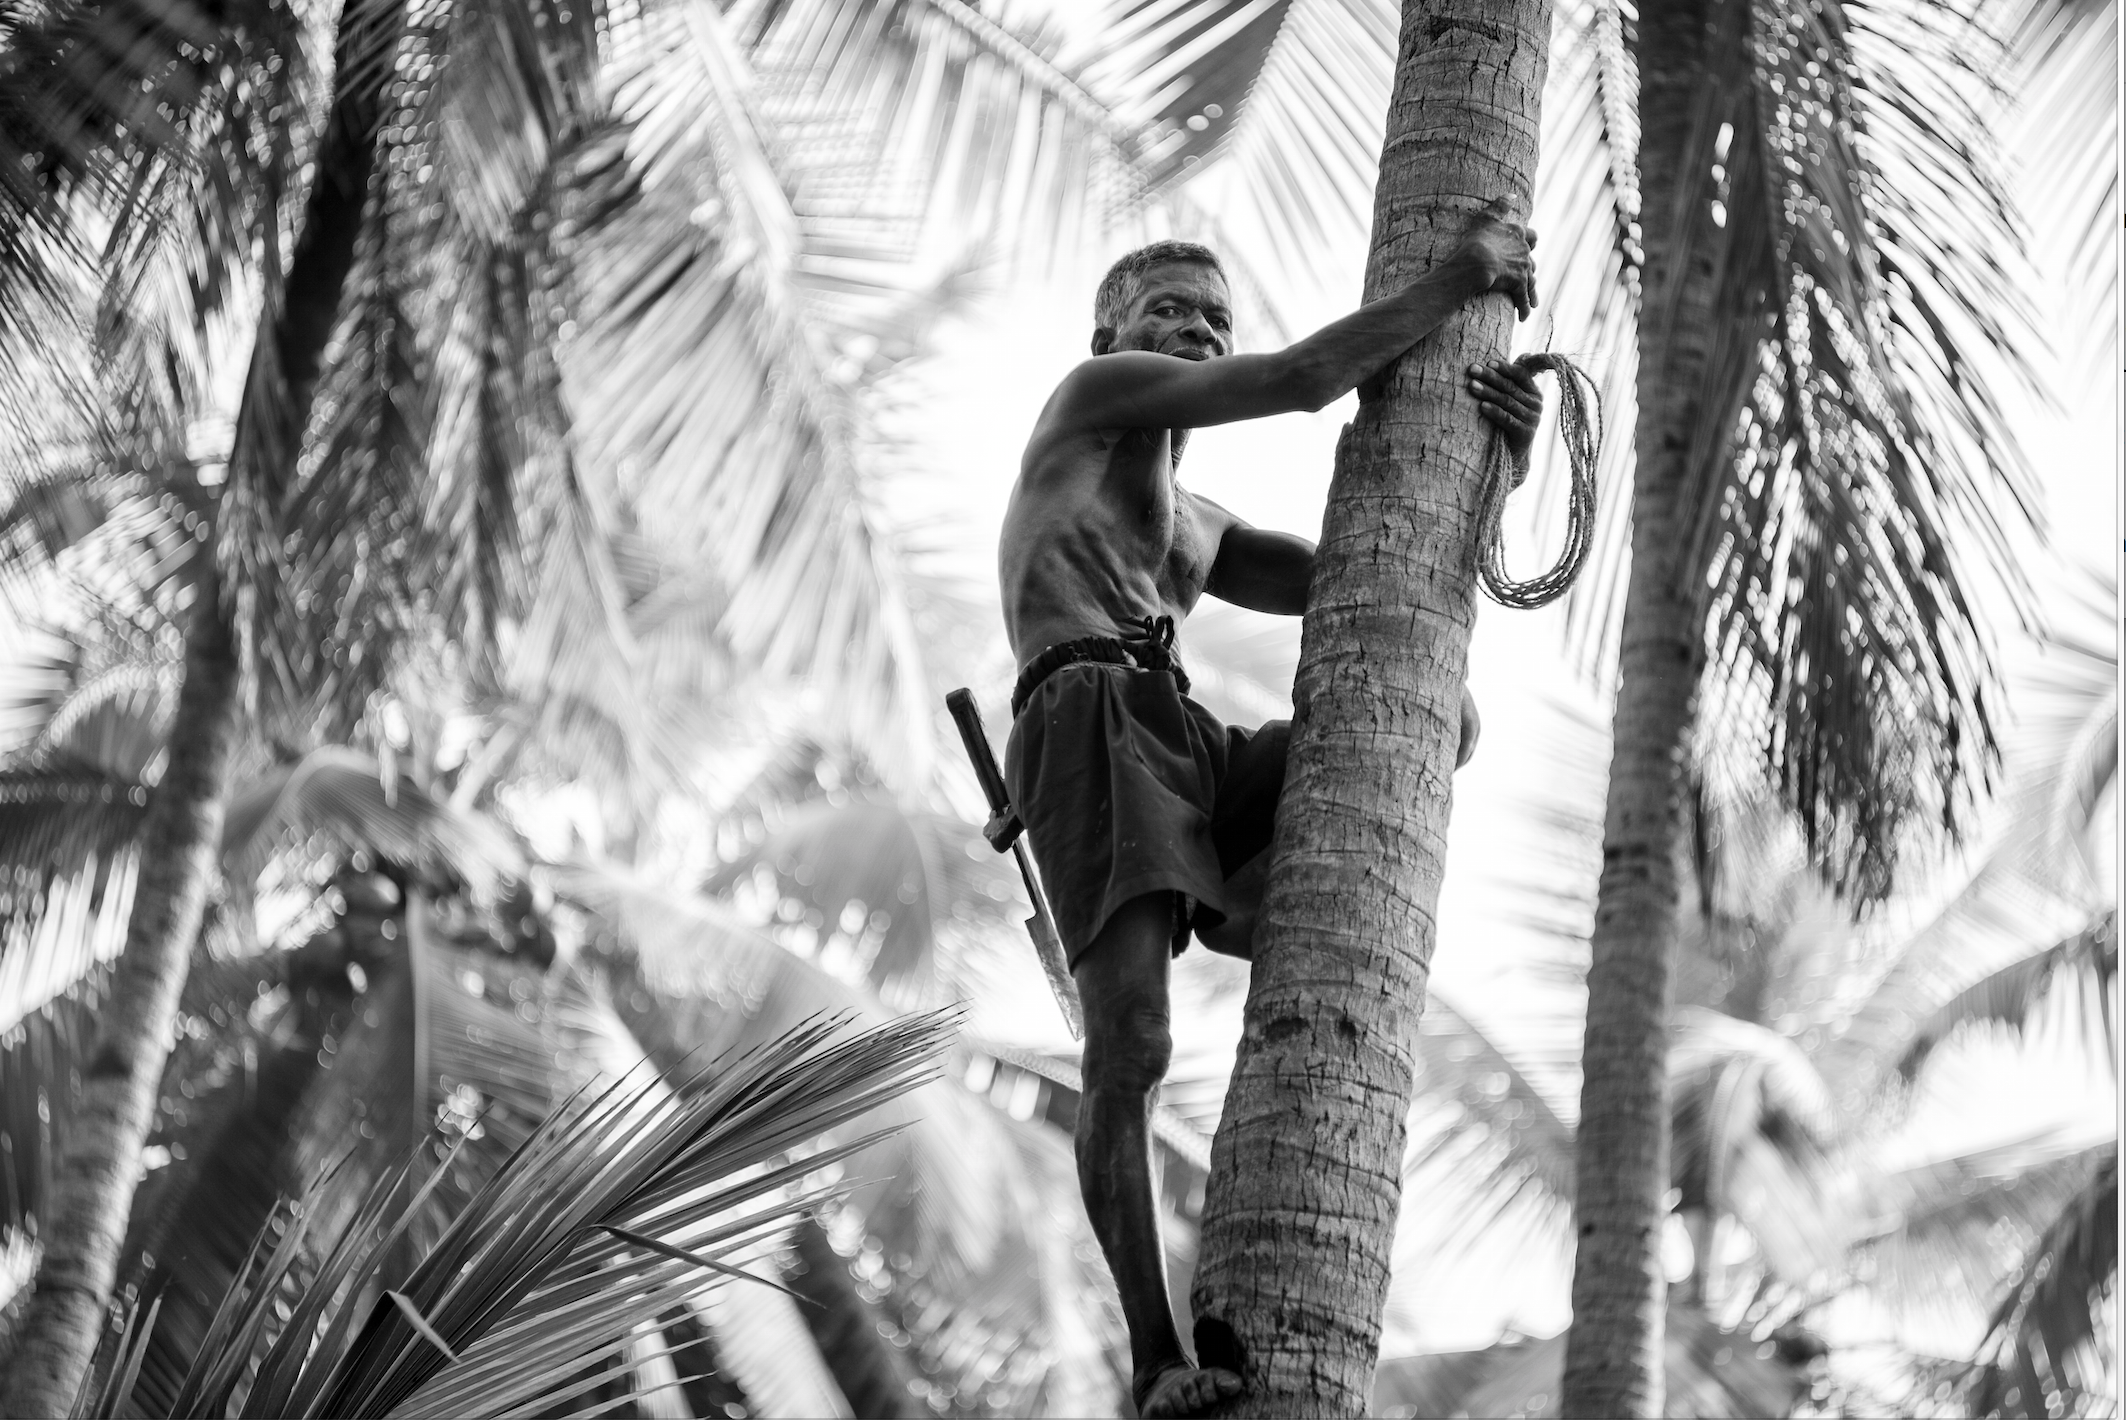 Leica M 240 90mm summicron pre-asph An untouchable makes a meek living bravely climbing 30m+ high coconut trees. Safety equipment consists of rope around the feet and experience.  The economics of the transaction are astounding - roughly 10 usable coconuts per sold on average for 50 ( $0.80US ) rupees. That sum is then divided by 6 ( boss, scouter, 2 people to pick coconuts up and two to clean them ).